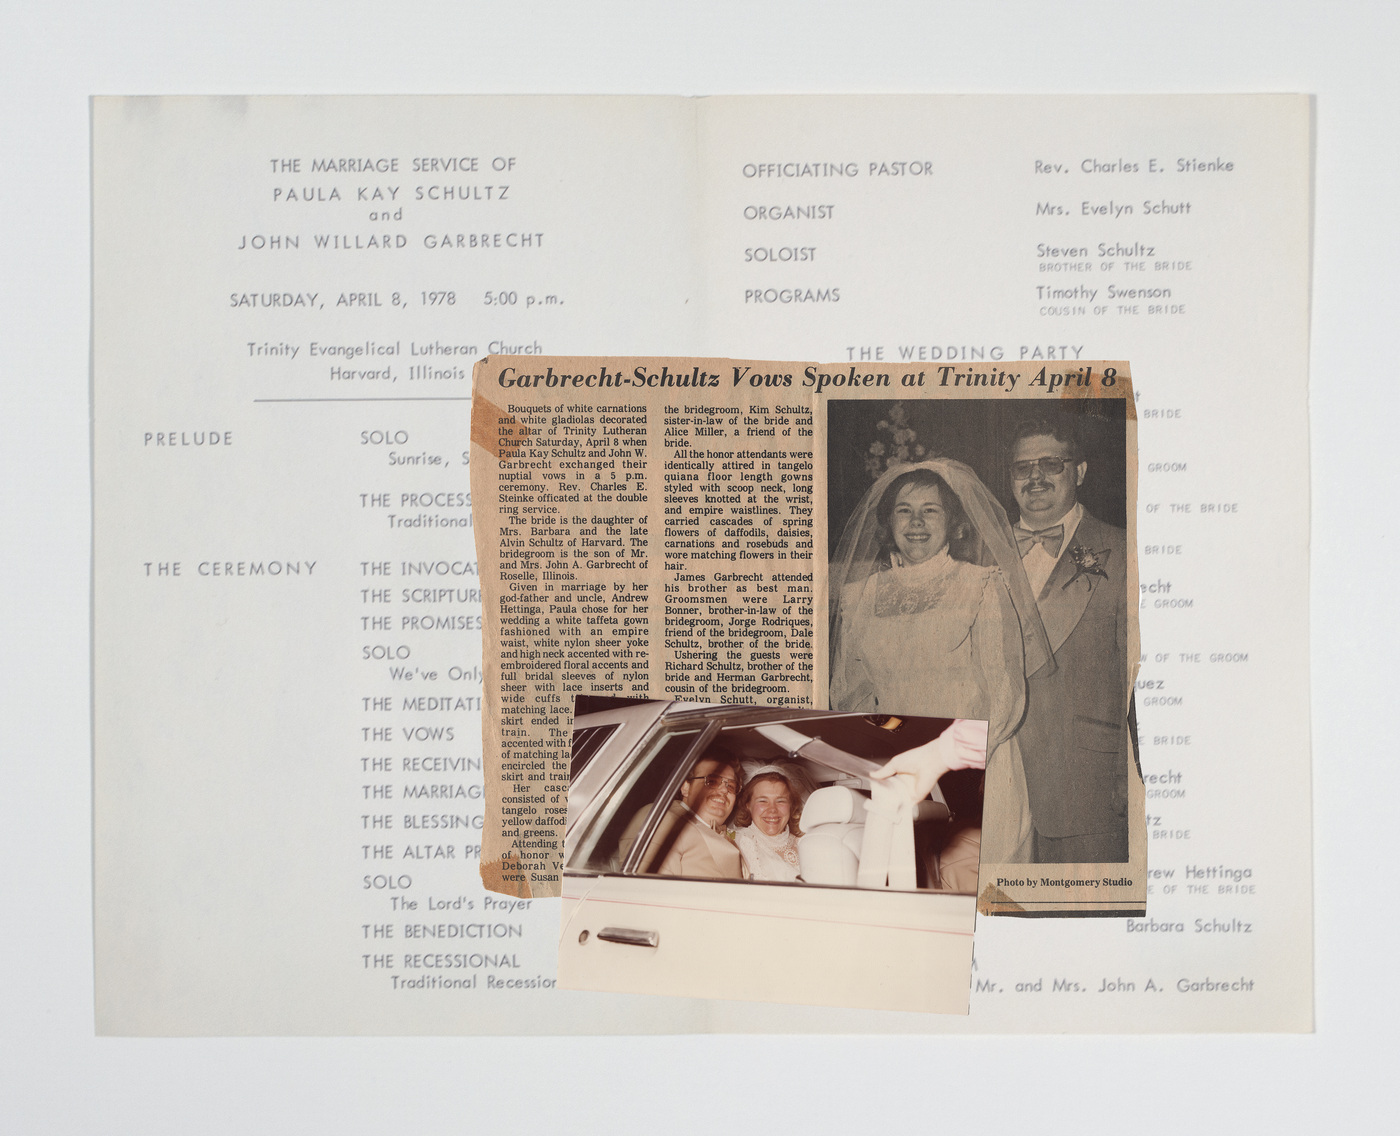 Brian Garbrecht - For Better or Worse 2020. Family Archive on Newspaper Clipping and Wedding Program.